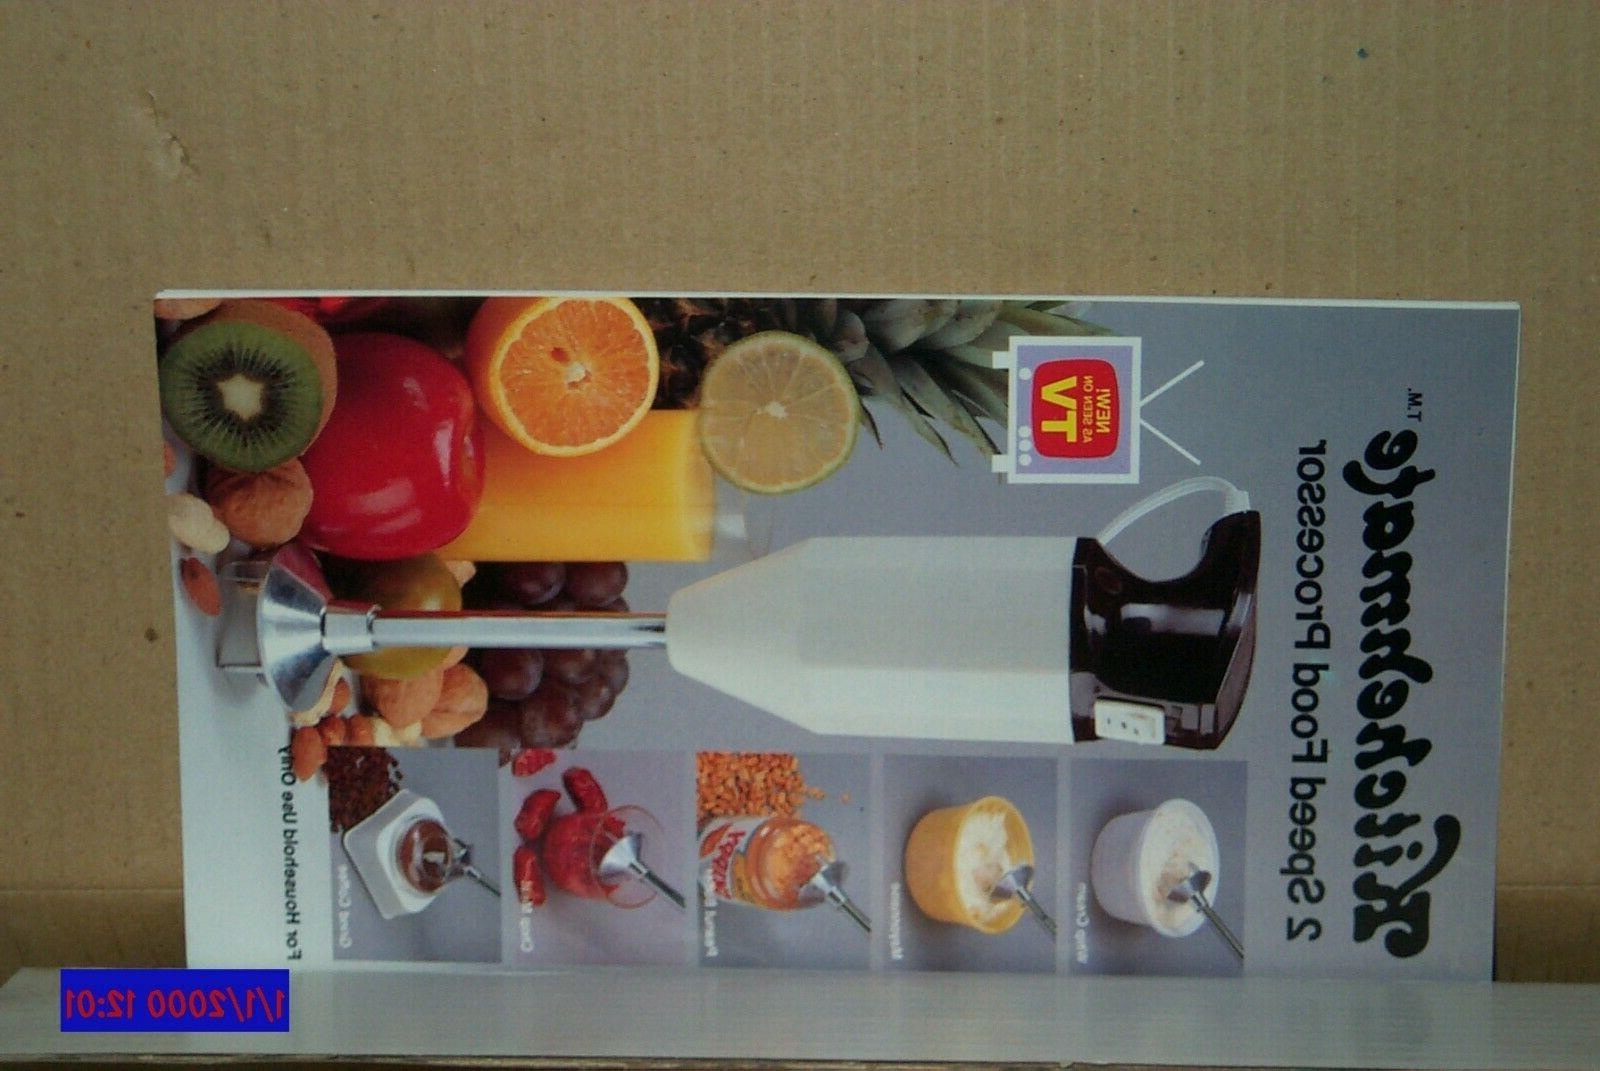 KITCHENMATE 2 SPEED FOOD PROCESSOR Stick - As TV -